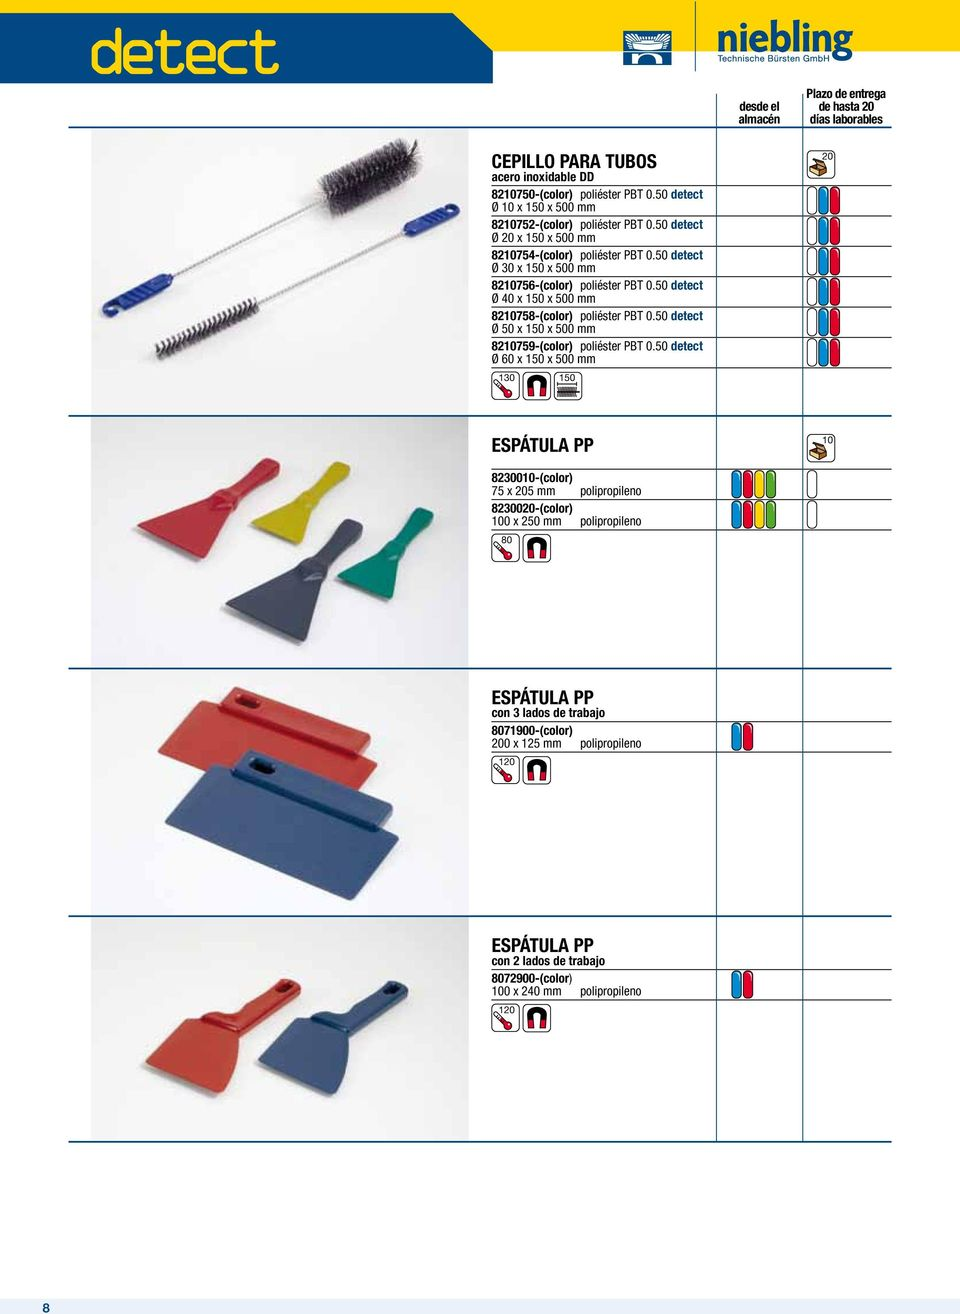 50 detect Ø 40 x 150 x 500 mm 82758-(color) poliéster PBT 0.50 detect Ø 50 x 150 x 500 mm 82759-(color) poliéster PBT 0.